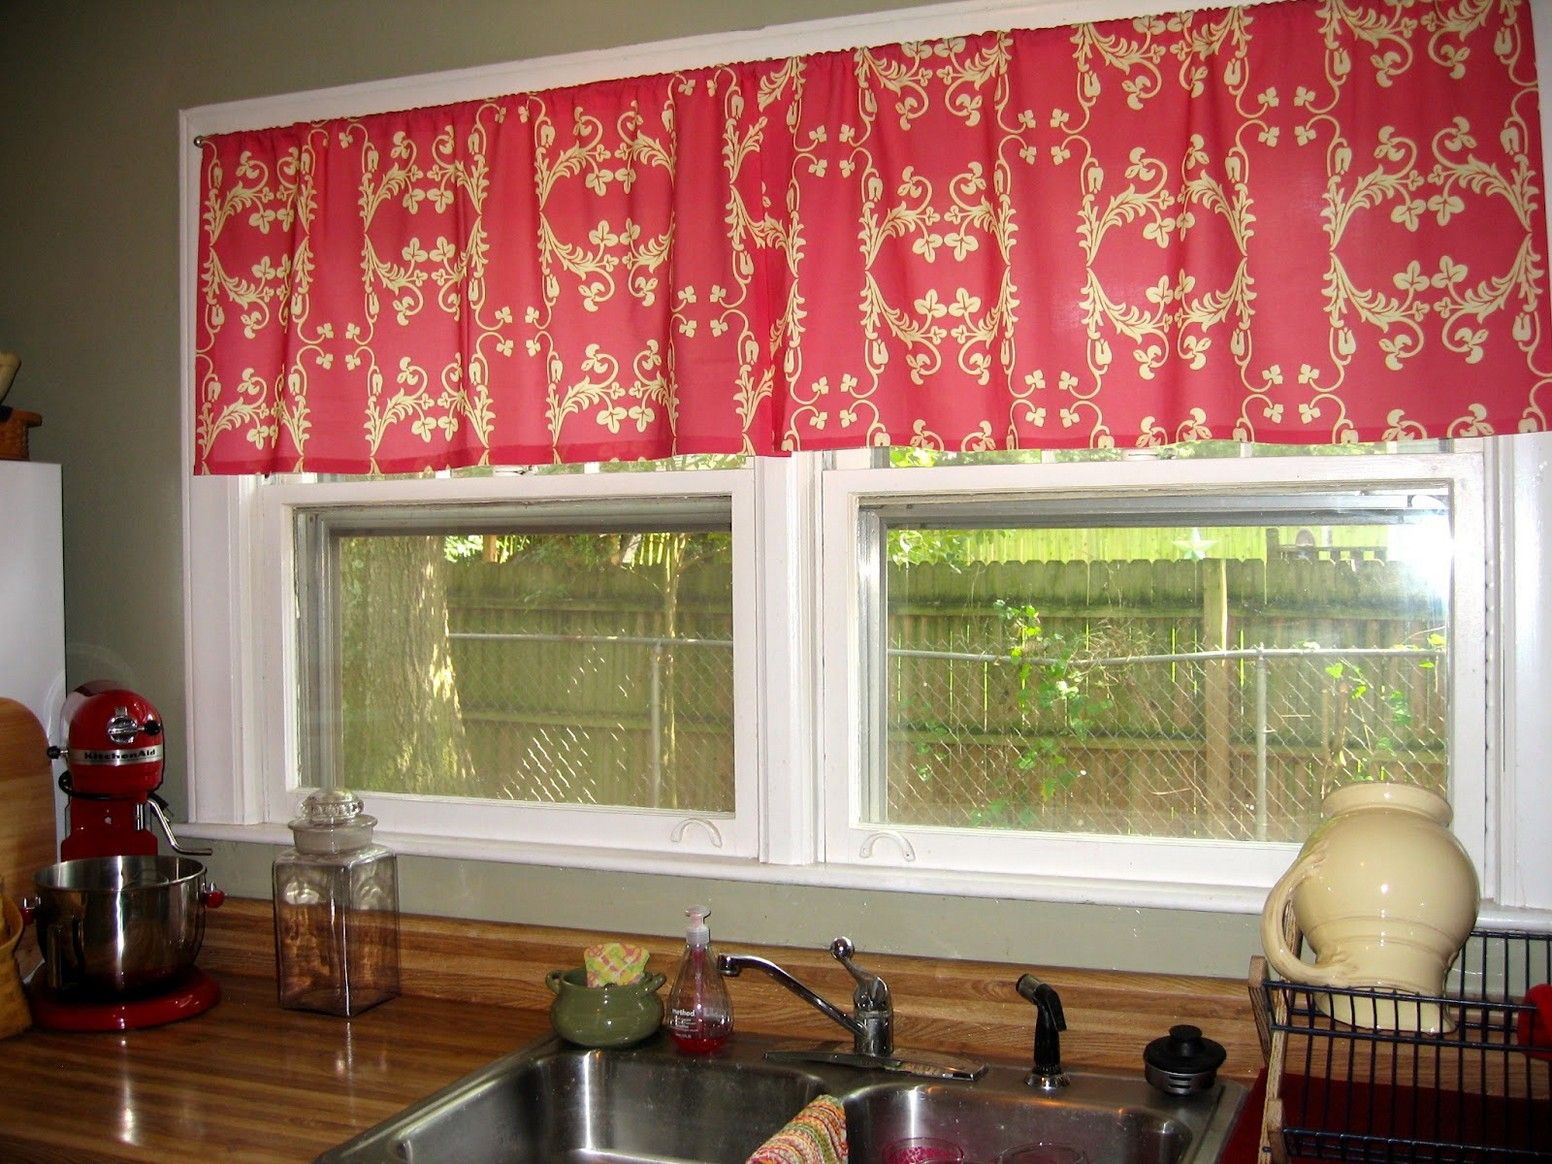 small curtain above window